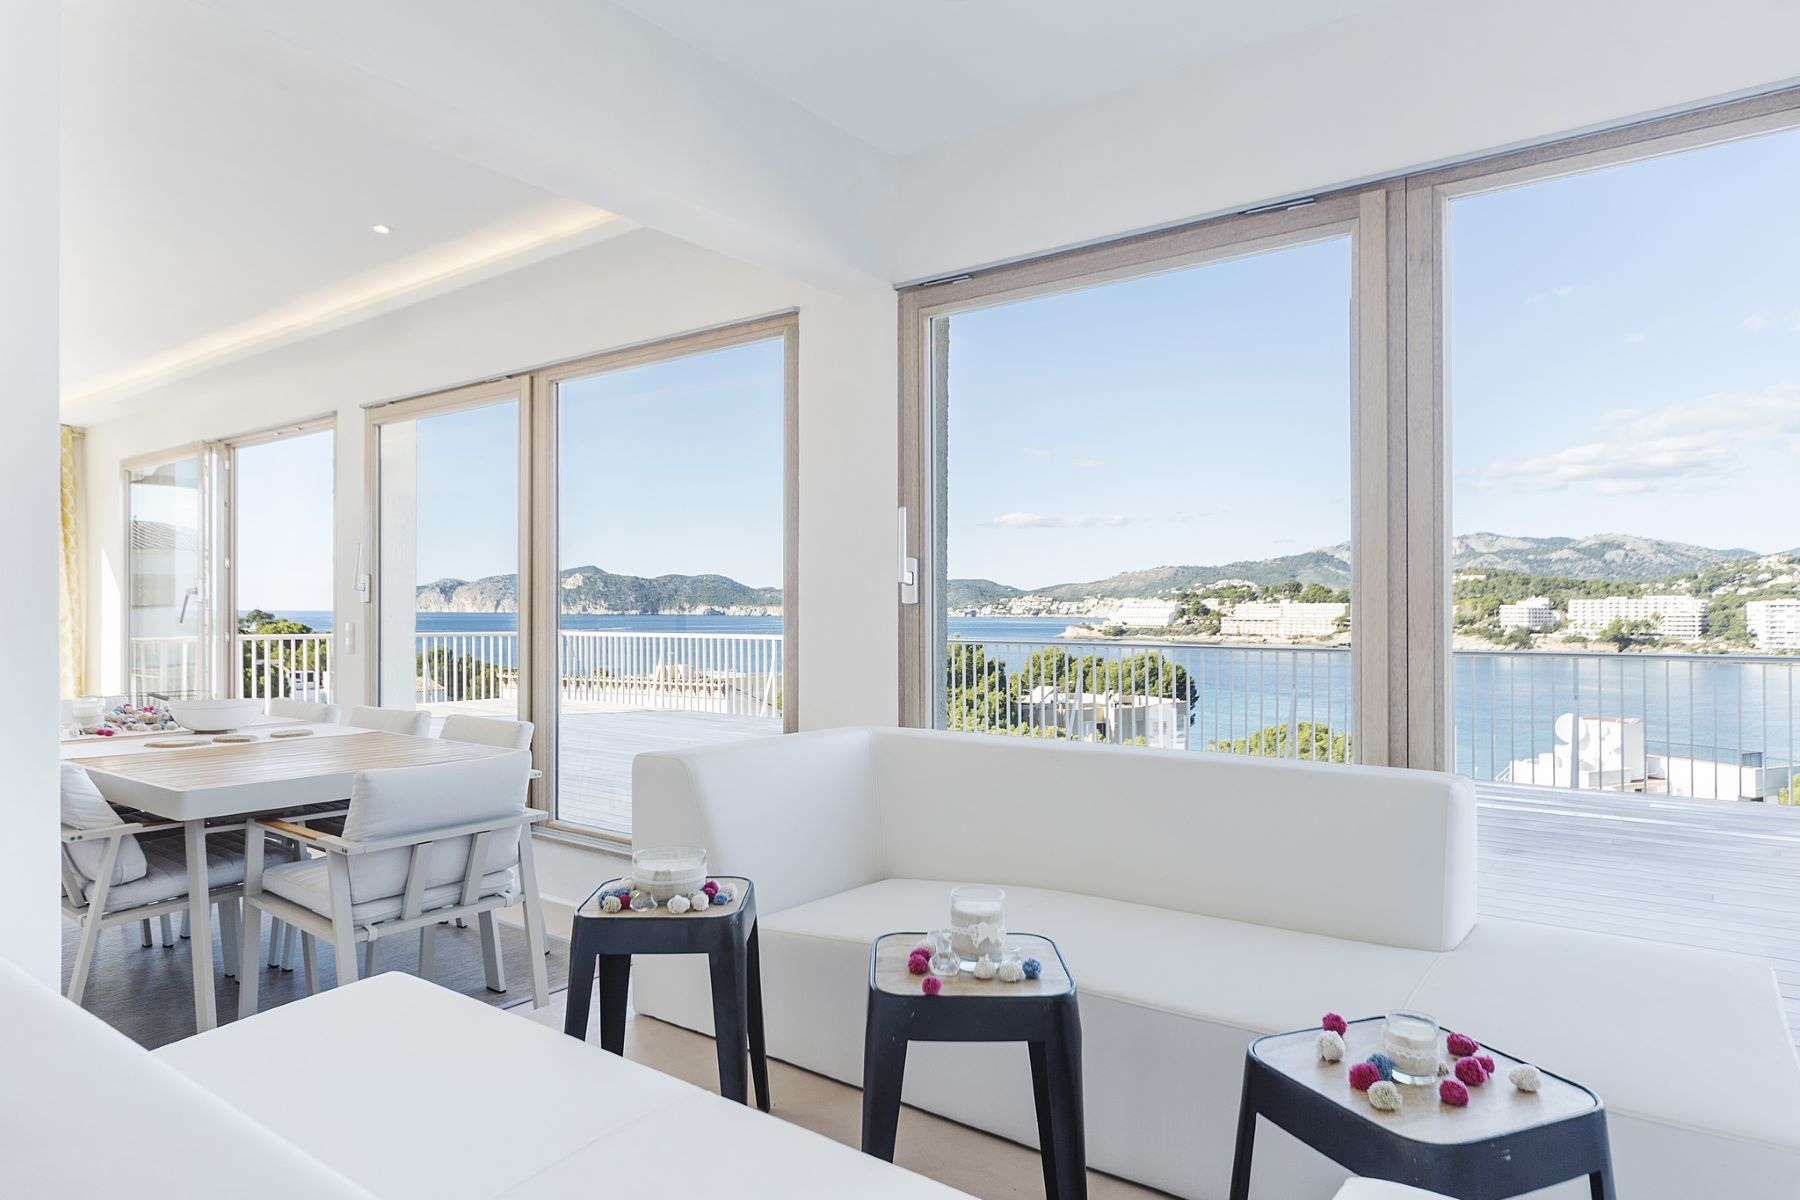 Single Family Home for Sale at Luxurious penthouse with sea views in Santa Ponsa Other Spain, Other Areas In Spain, Spain